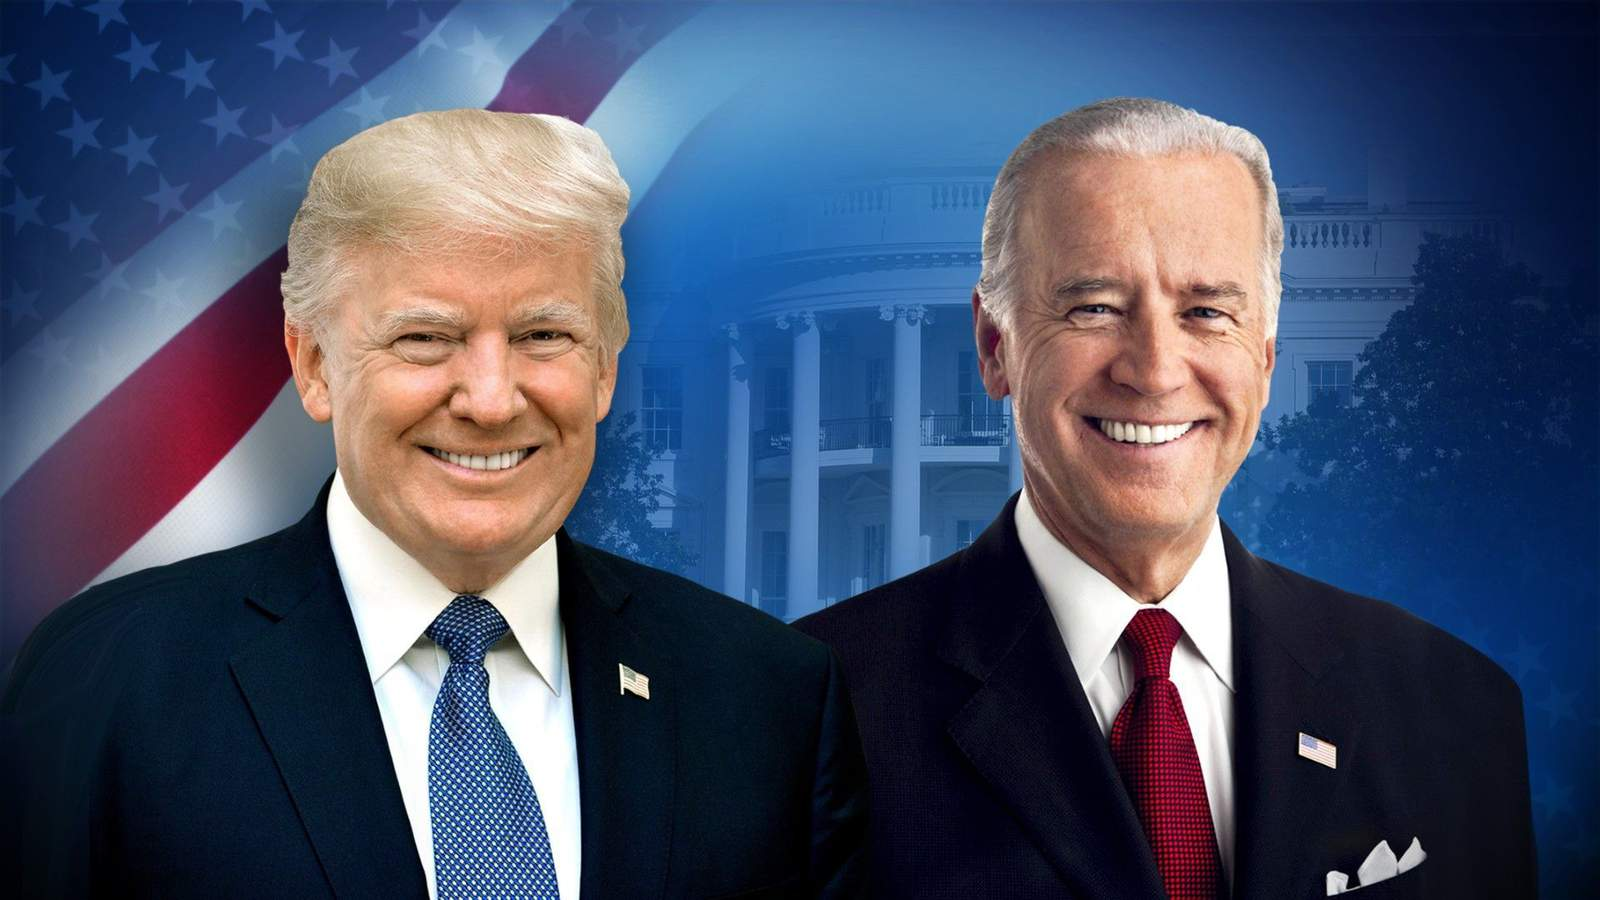 Trump vs. Biden: Here are the final projections in the presidential race